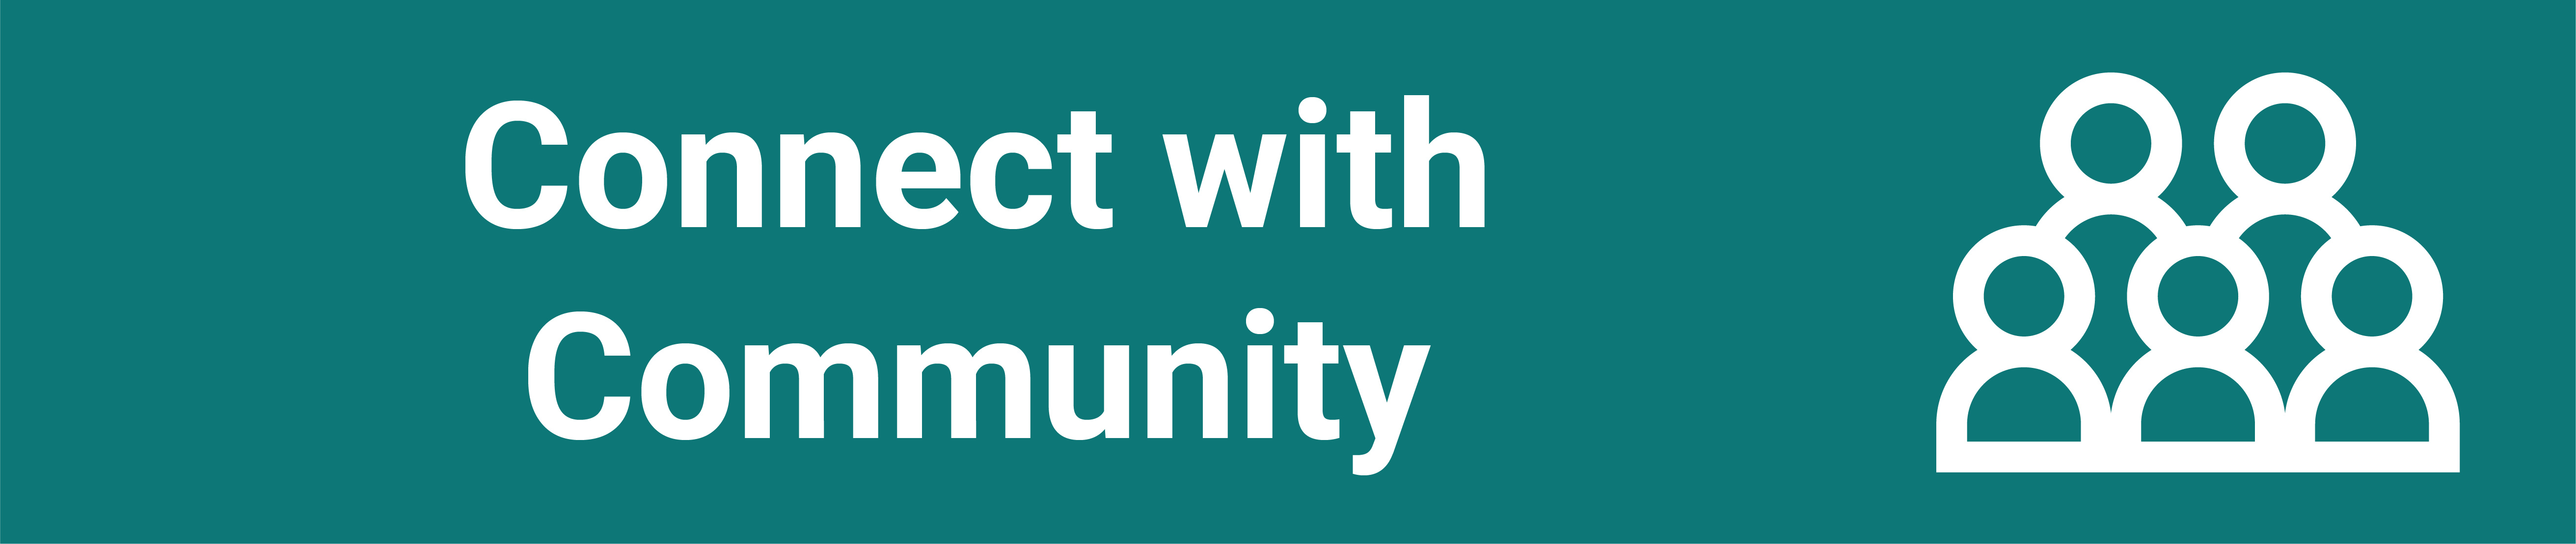 connect with community